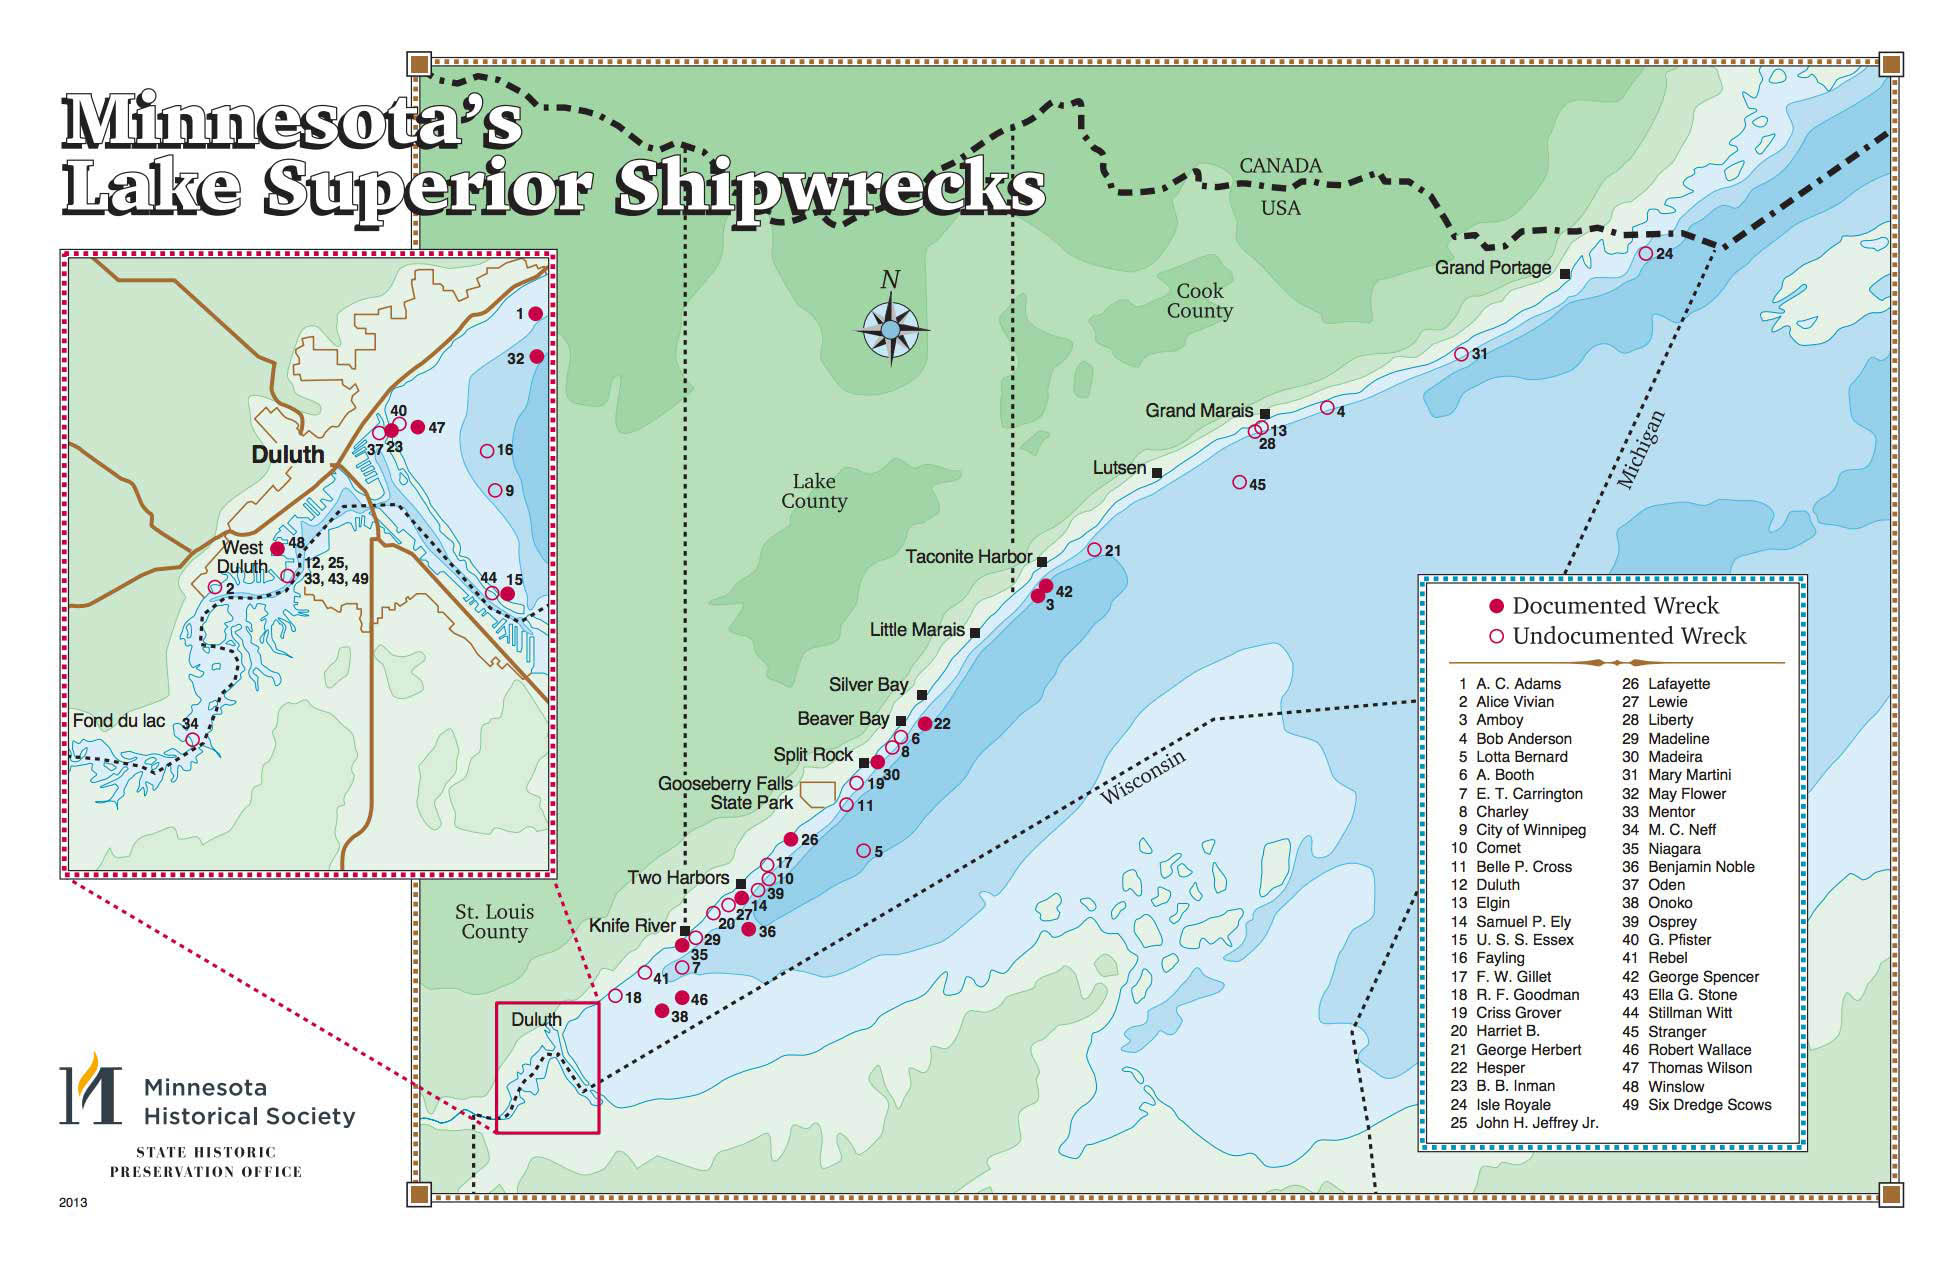 Thumbnail of Minnesota's Lake Superior Shipwrecks, each a dot near the shoreline. Inset of Duluth.